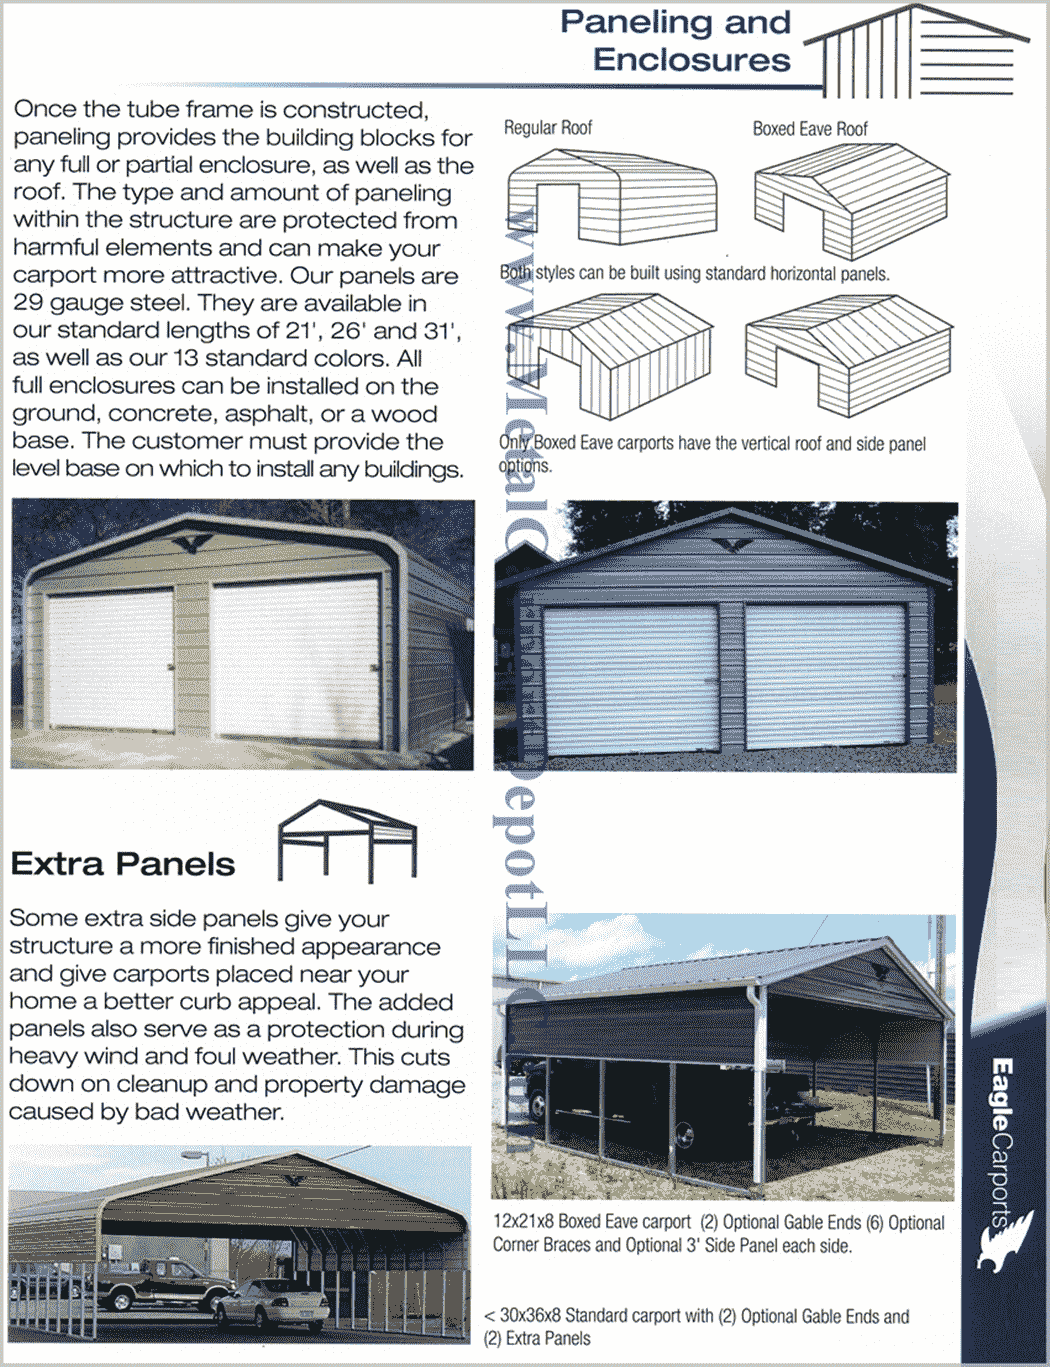 Paneling and Enclosure Information